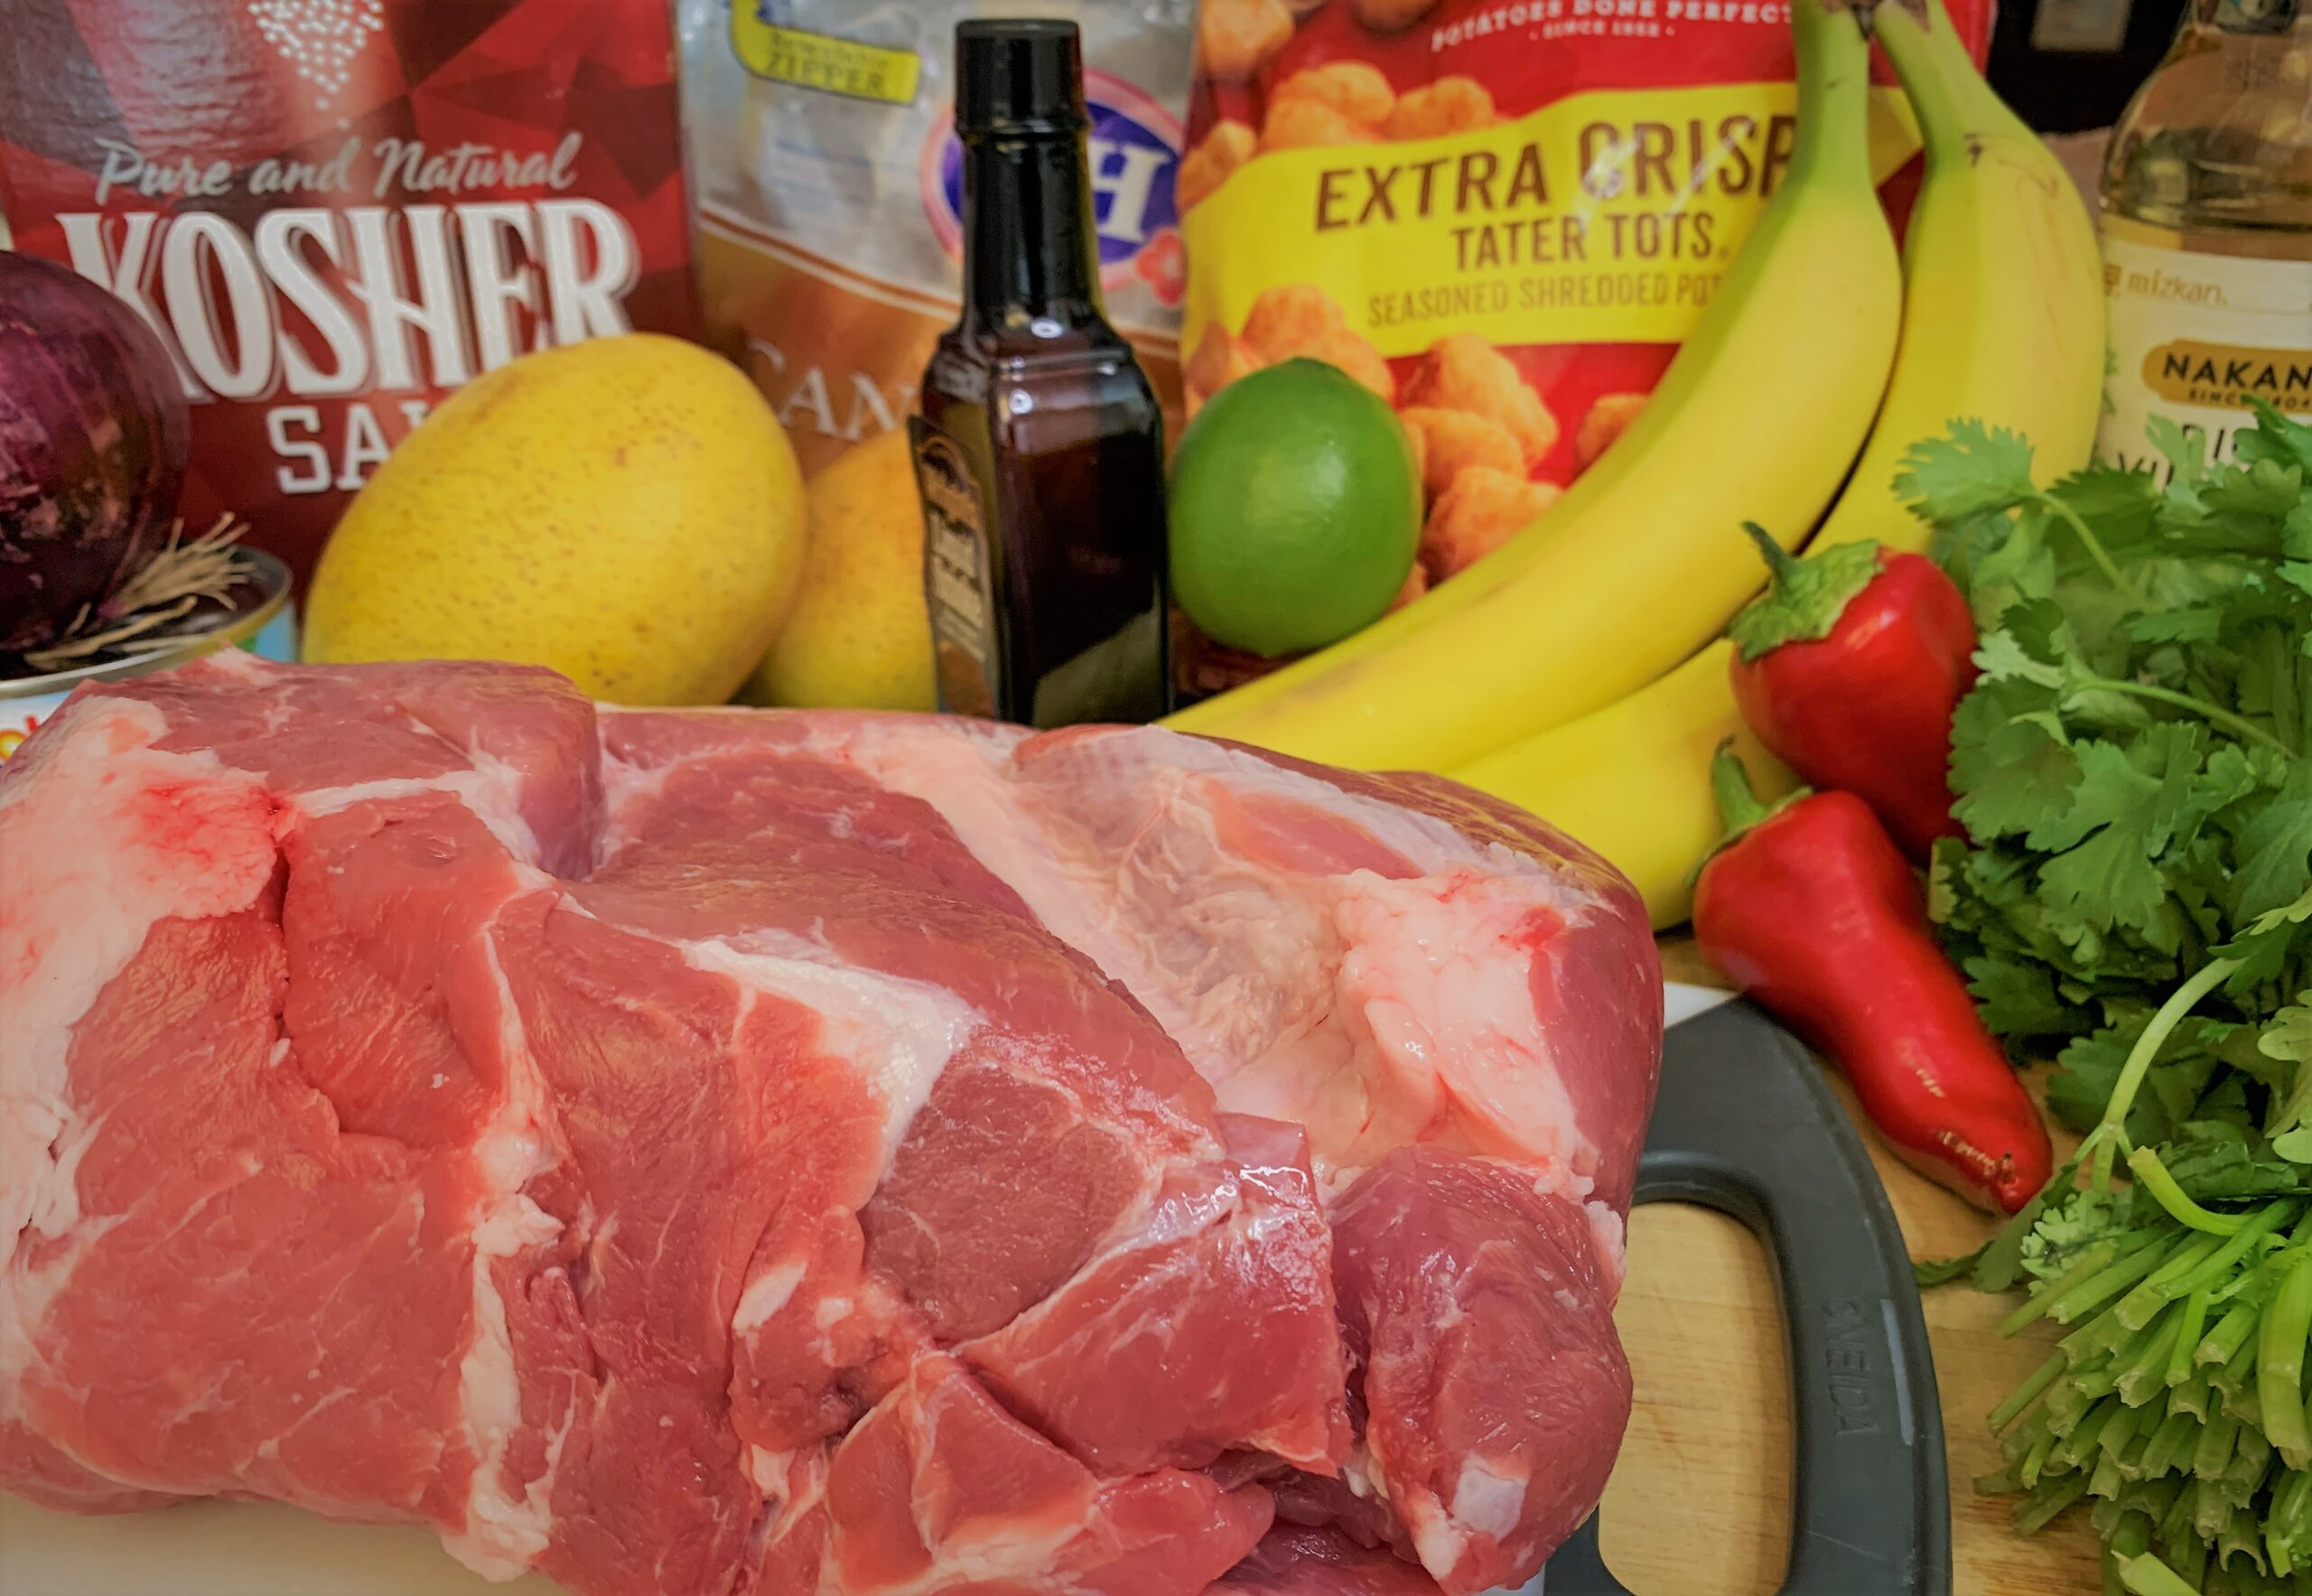 The ingredients for our Kalua-Style Pulled Pork Tots with Polynesian BBQ Sauce & Mango Salsa